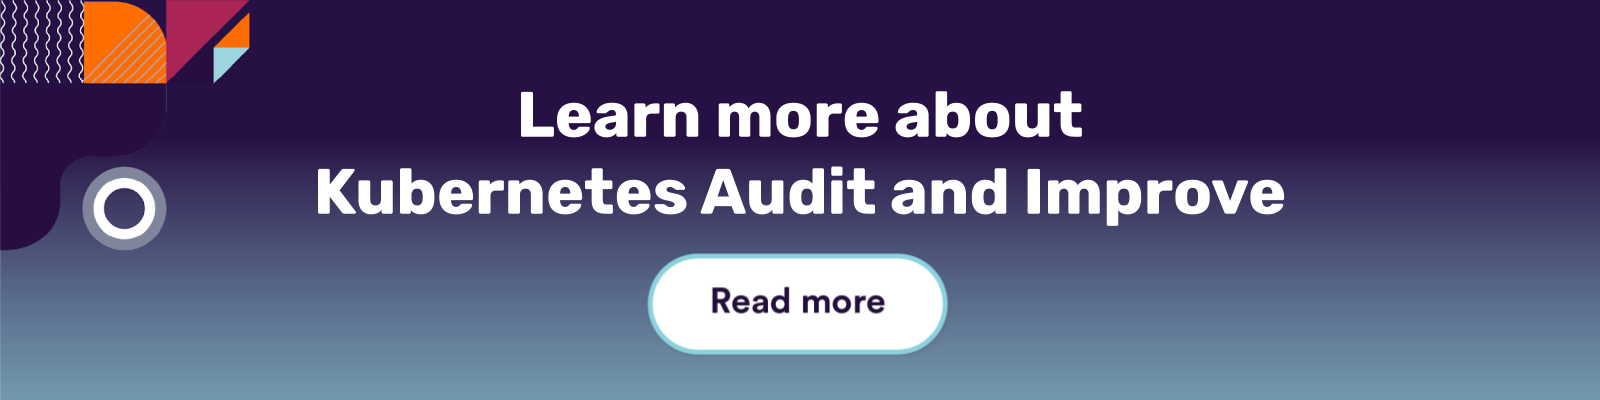 Learn more about Kubernetes Audit and Improve